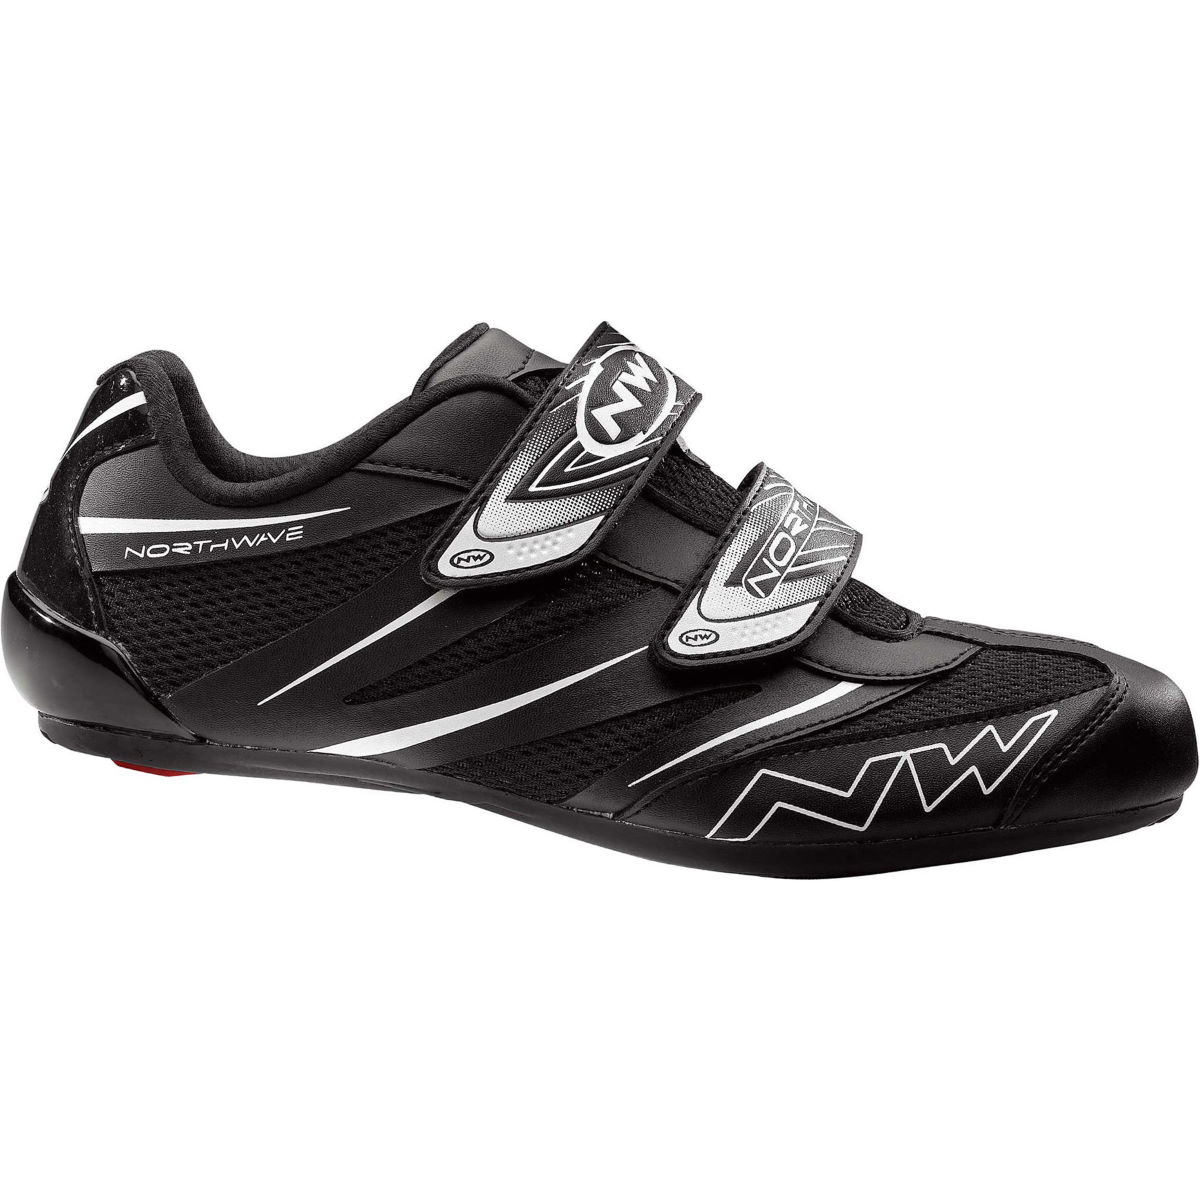 Northwave Jet Pro Shoes